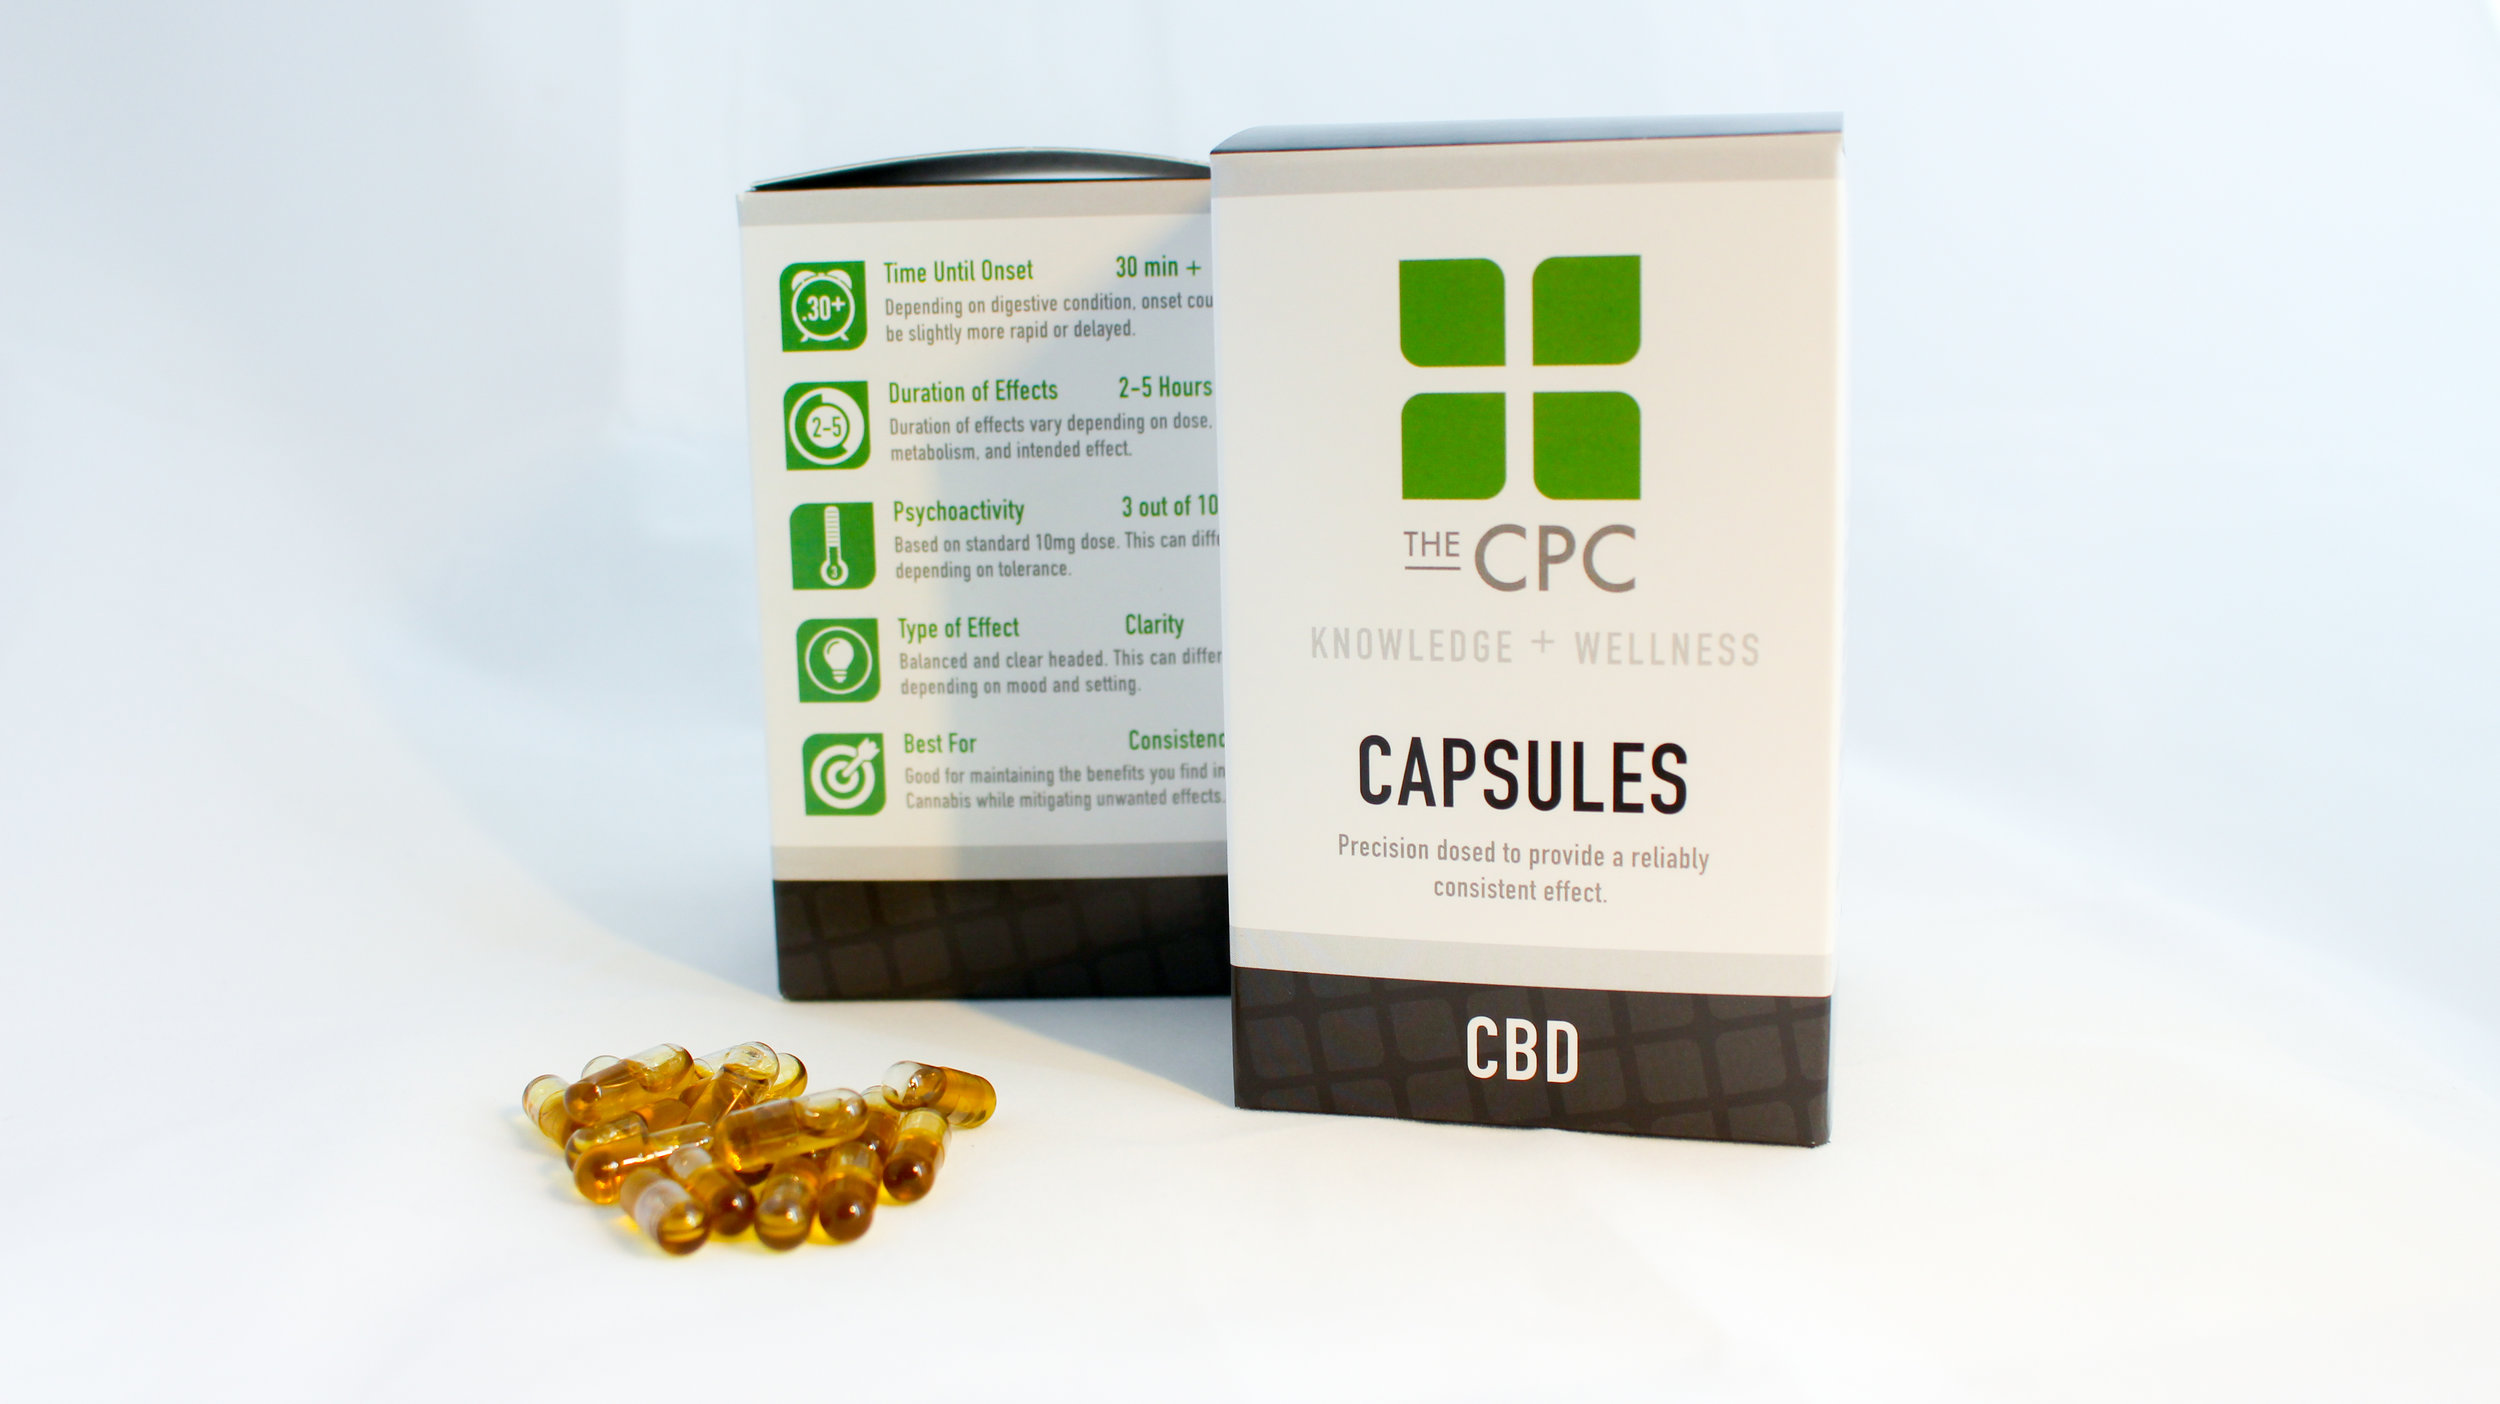 Box of Twenty 5mg CBD / 5mg THC capsules